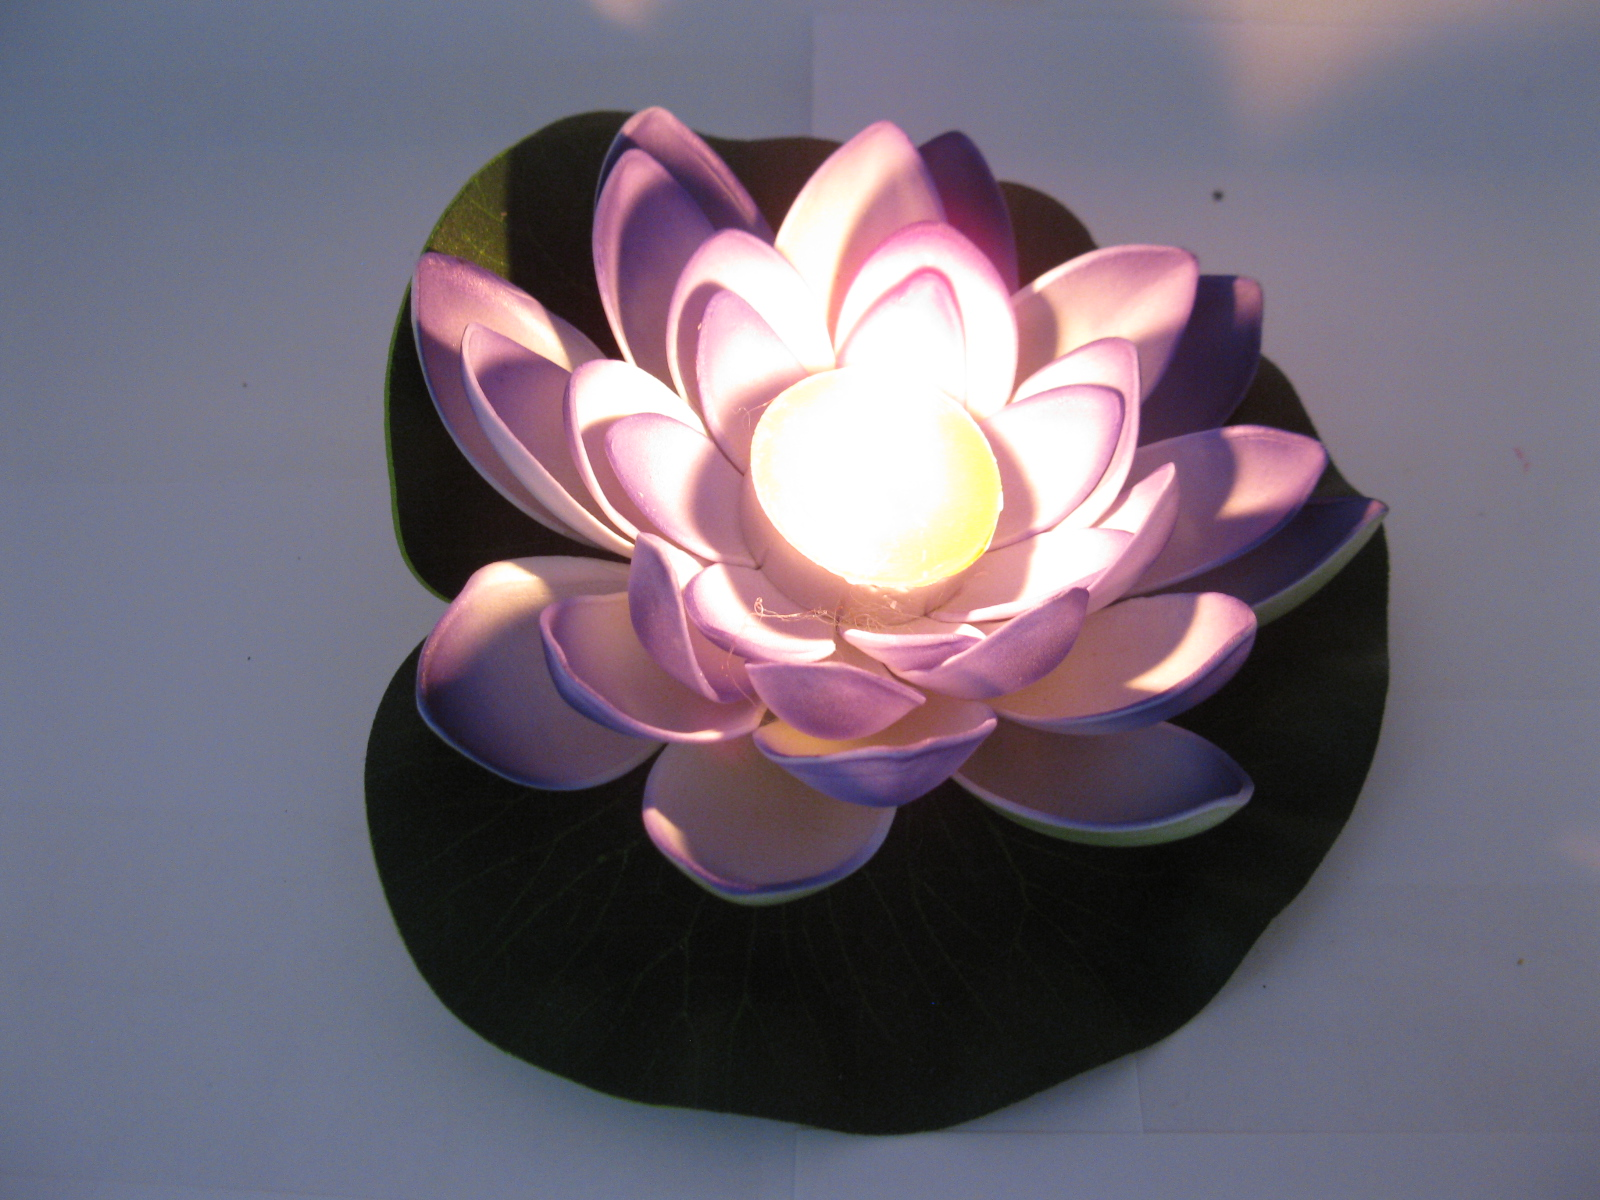 25 Purple Floating Lotus Flower with Candle Wedding Decoration [we f143] $4